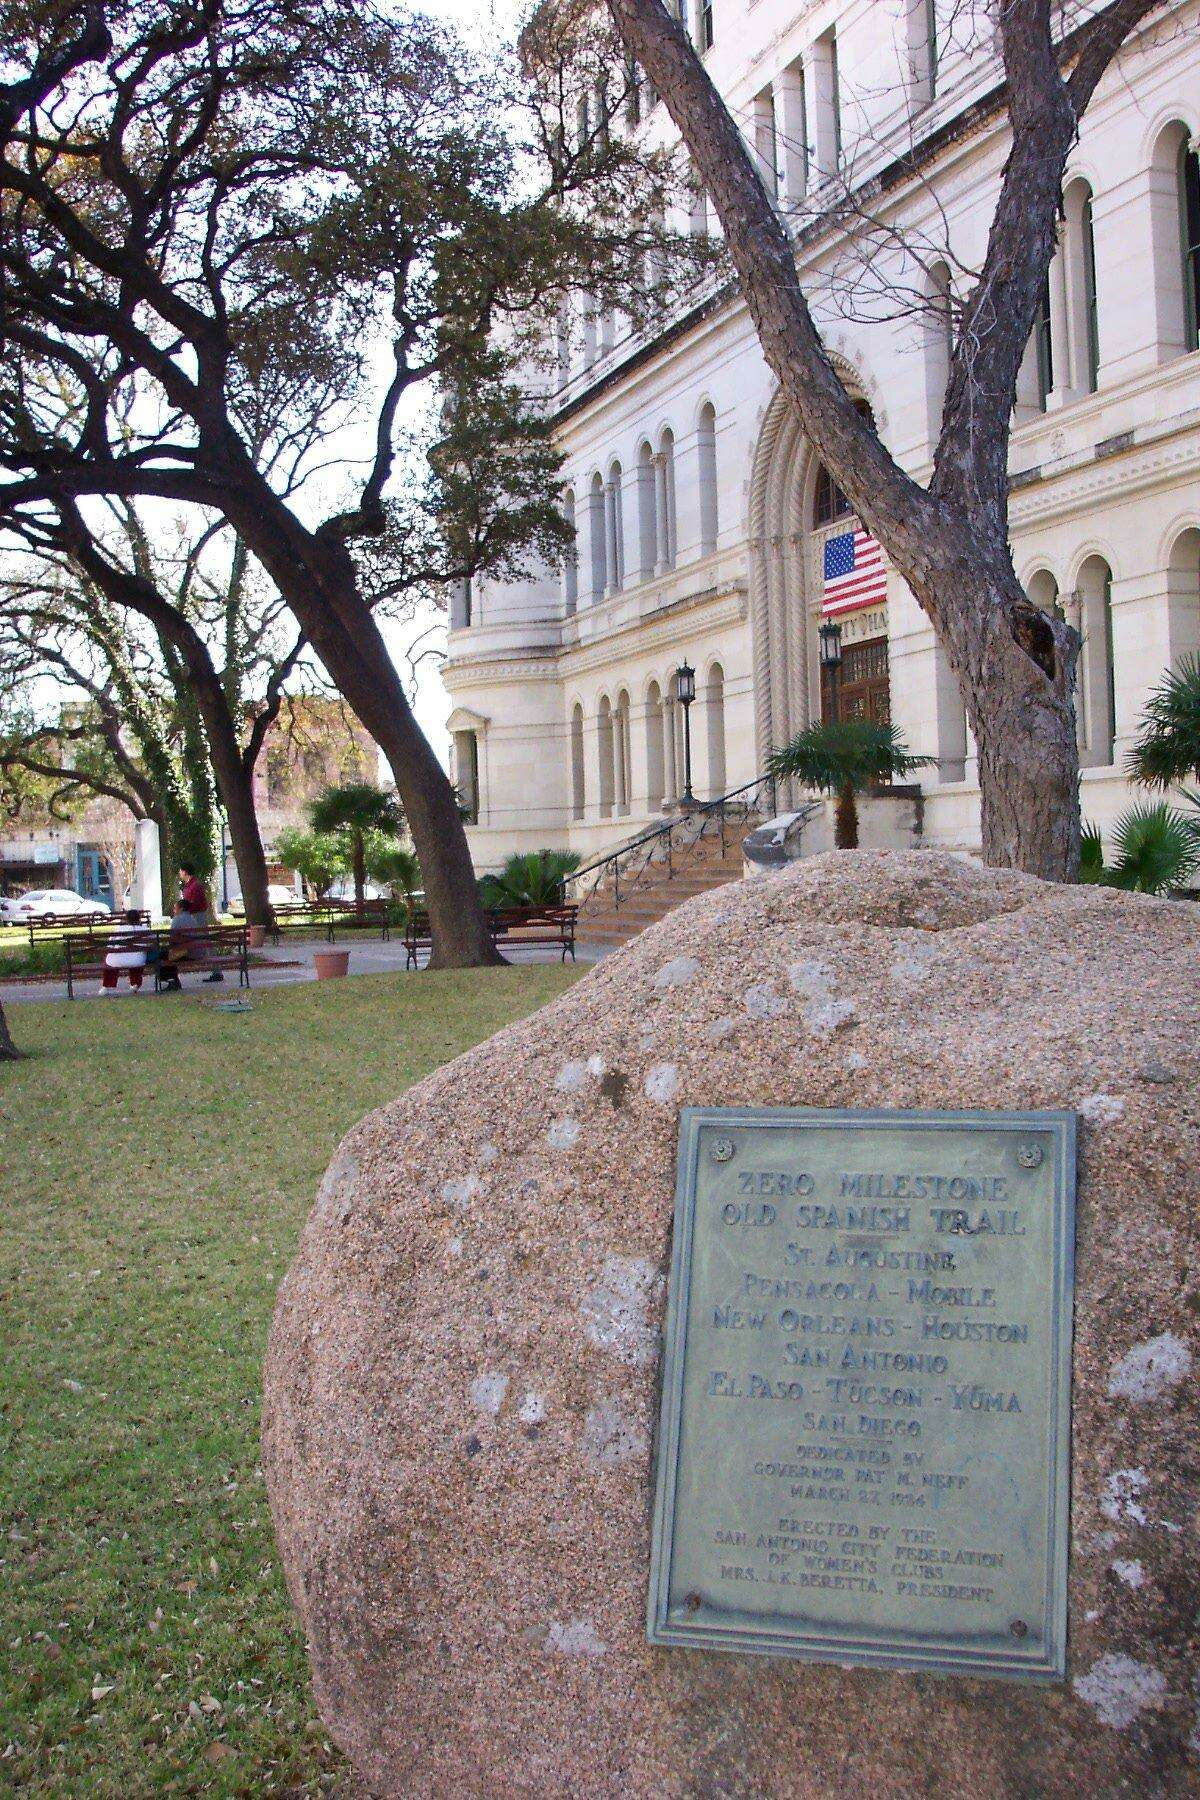 This is the Zero Milestone marker of the Old Spanish Trail, placed in 1924 on the northeast corner of the grounds of what is now San Antonio City Hall. The Old Spanish Trail is a commemorative highway, planned and promoted in the early 20th century. (Updated to correct date).